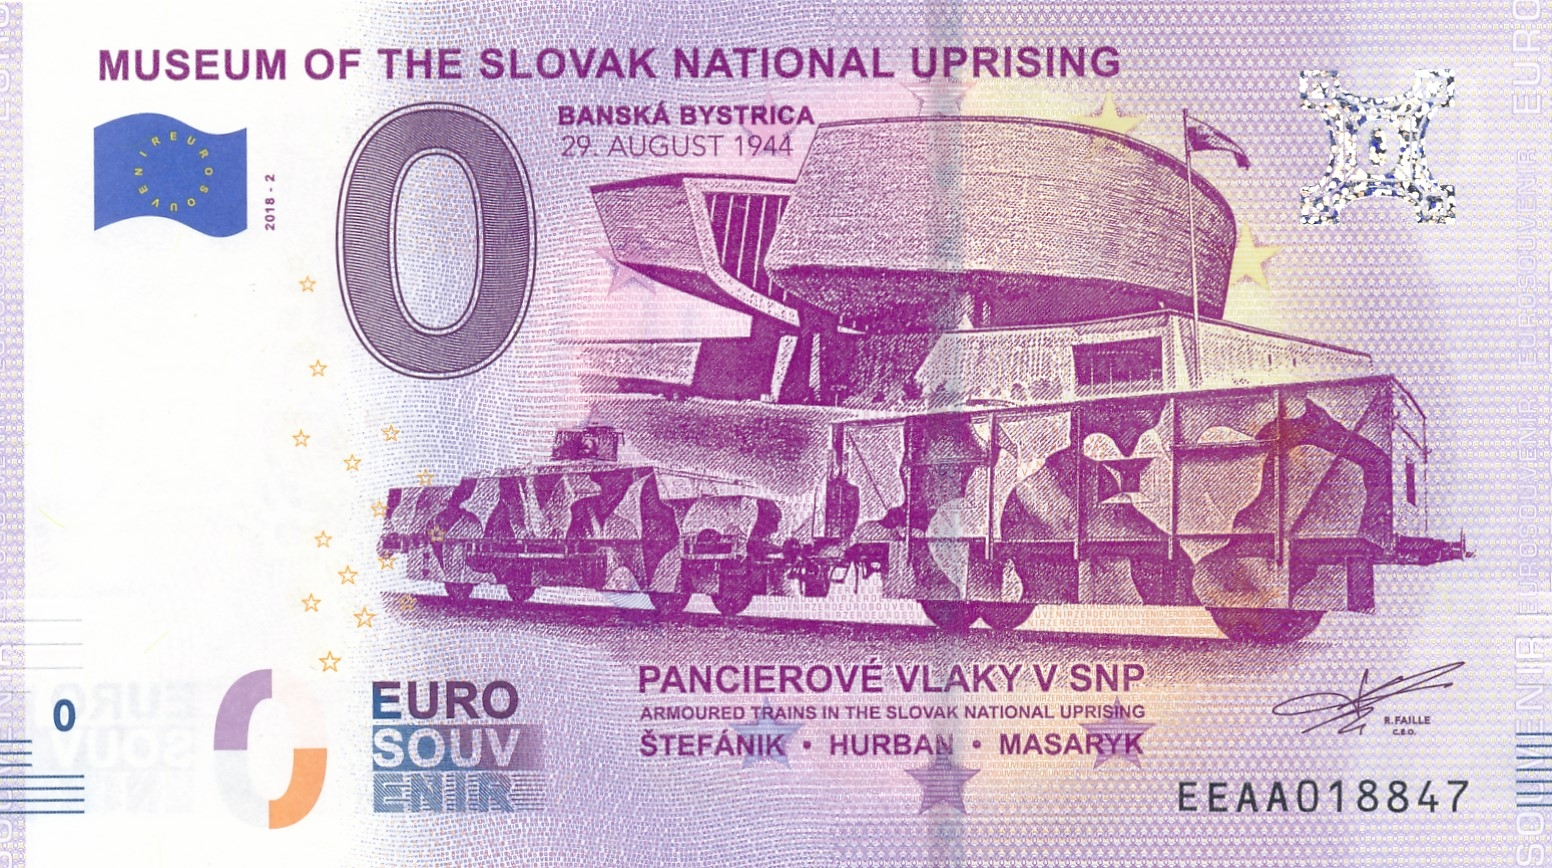 0 Euro Souvenir Museum of the Slovak National Uprising 2018-2